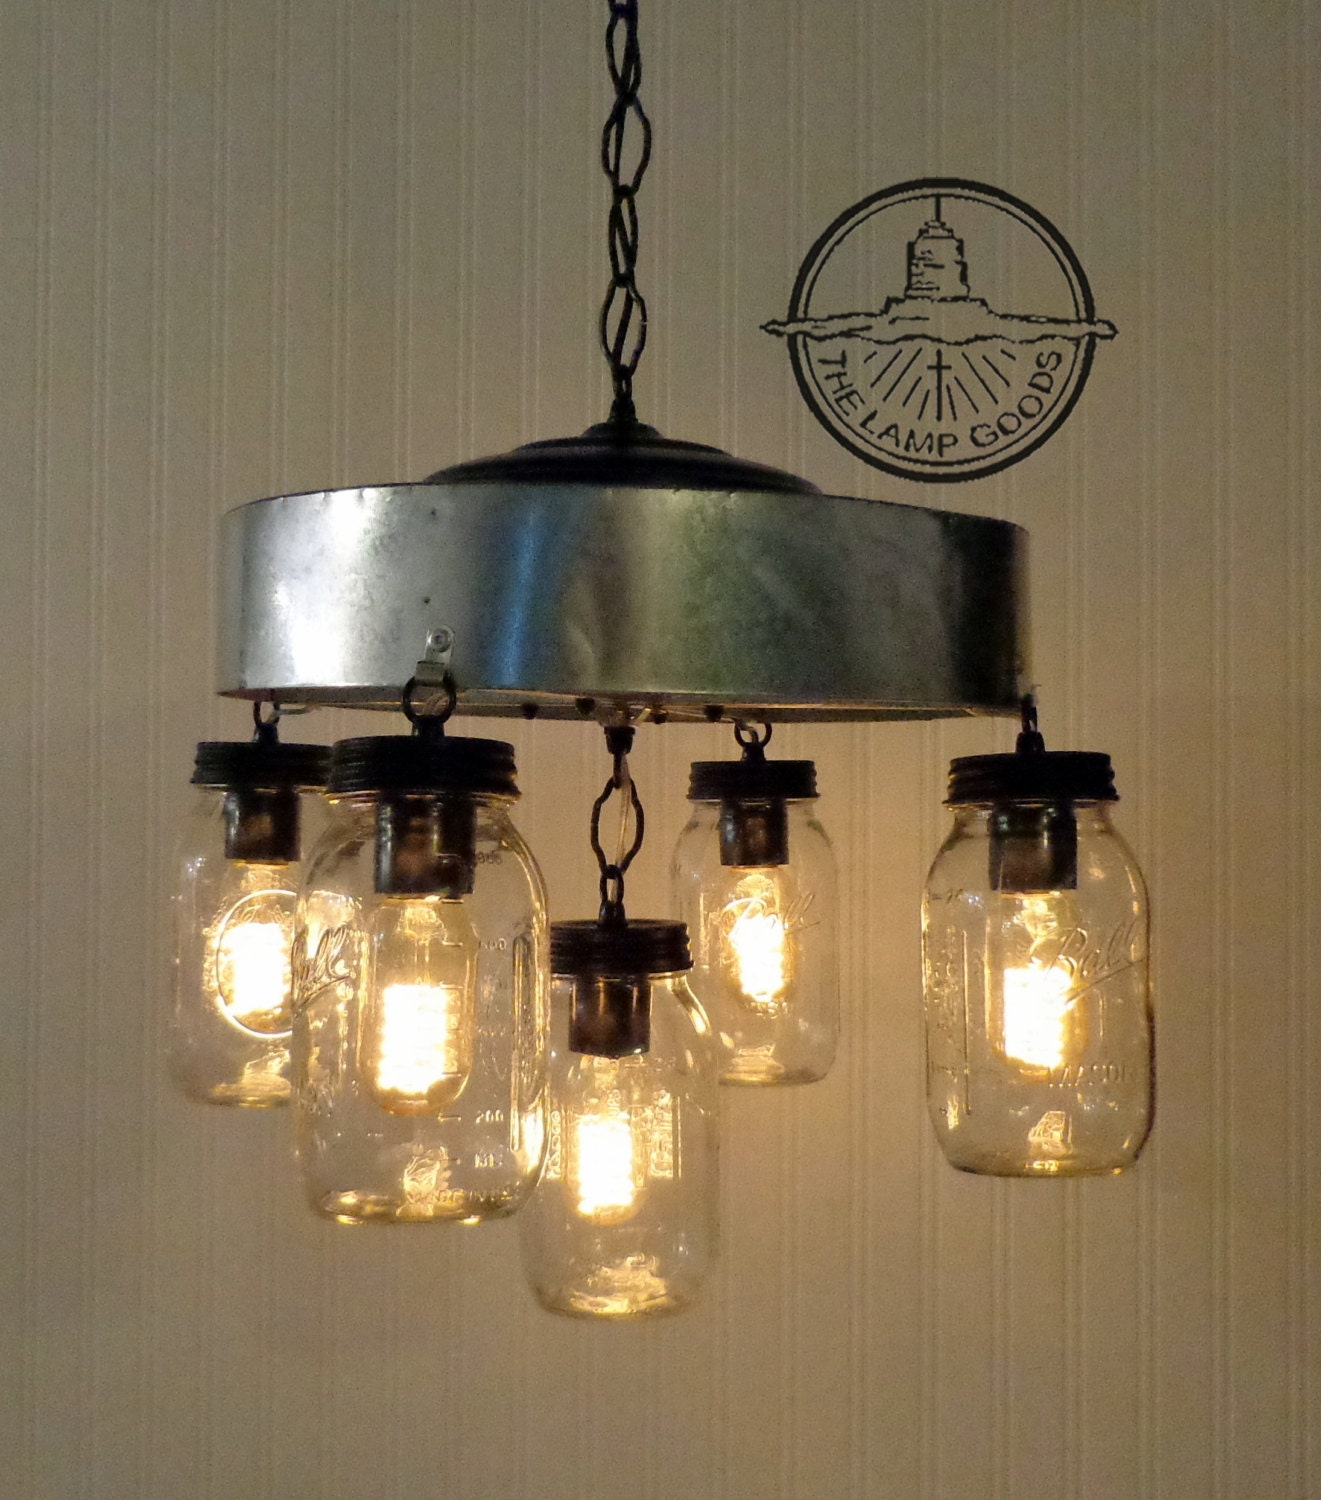 mason jar chandelier light fixture with farmhouse by lampgoods. Black Bedroom Furniture Sets. Home Design Ideas